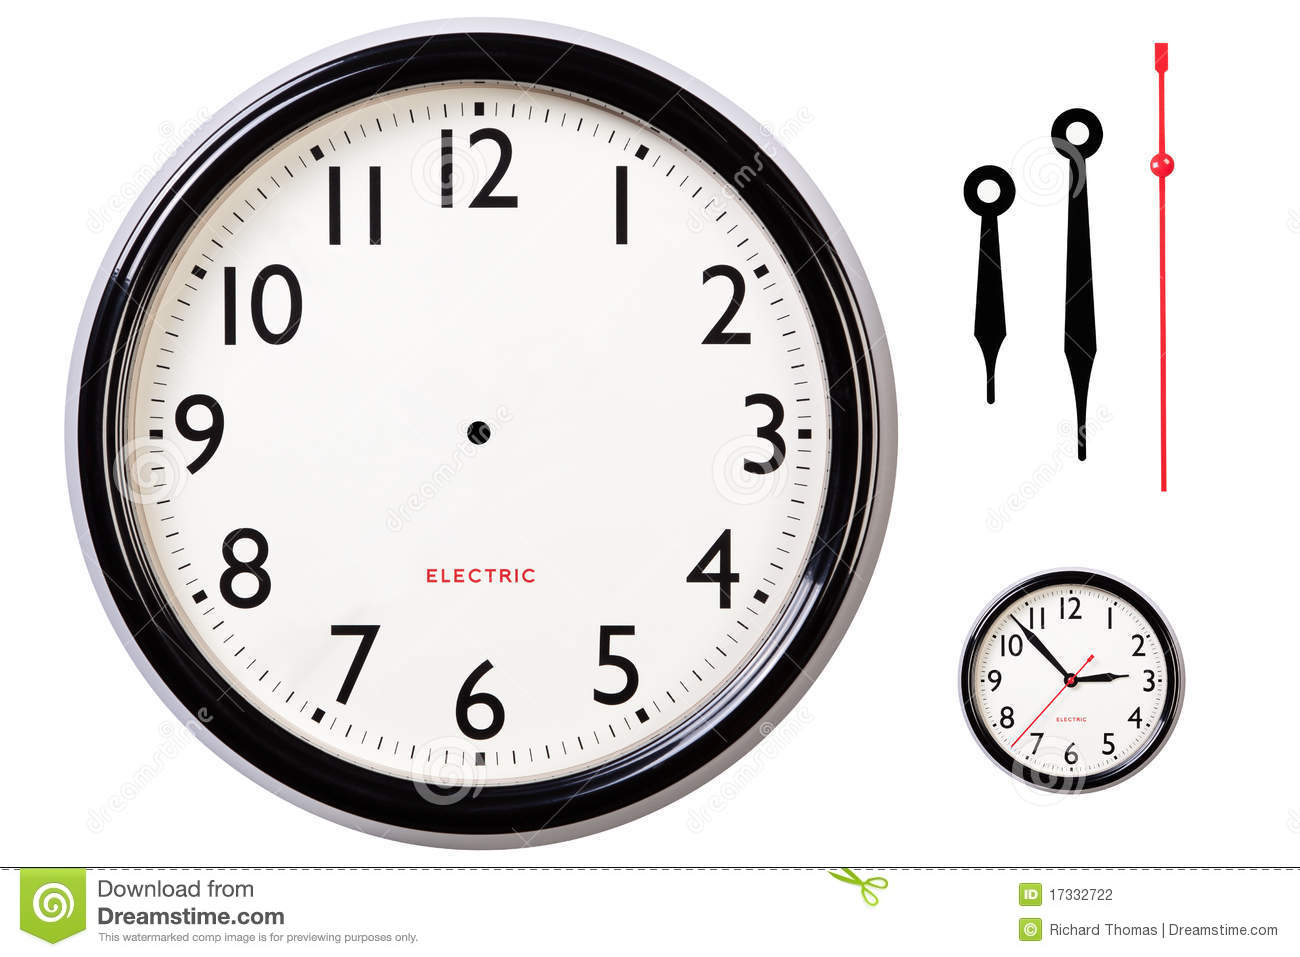 graphic relating to Printable Clock Face With Hands named Blank clock experience and palms inventory image. Impression of quantities